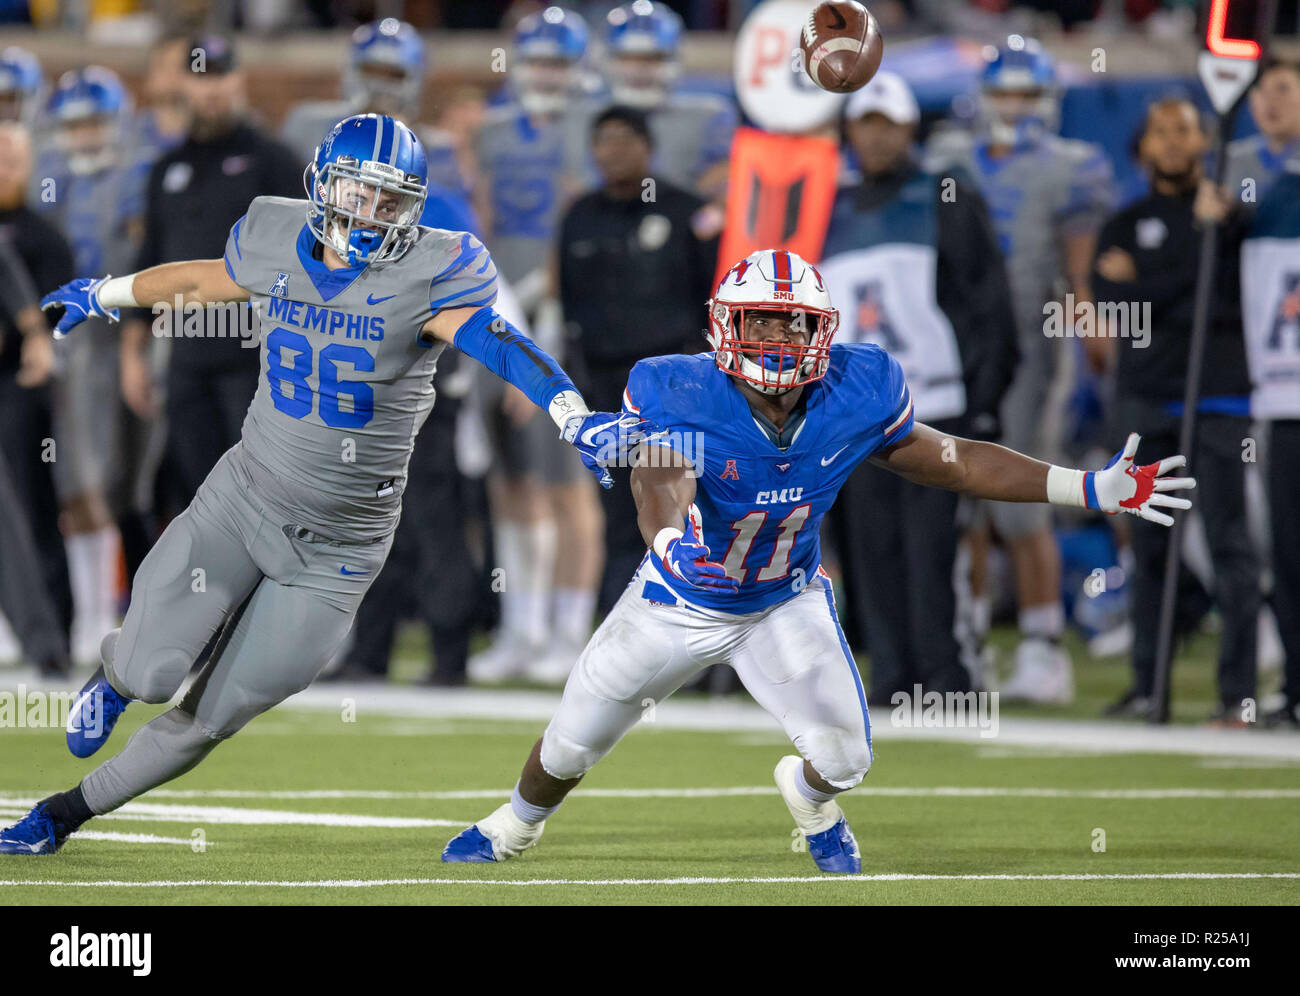 Dallas, Texas, USA. 16th Nov, 2018. SMU's Kyran Mitchell #11 and Memphis' Joey Magnifico #86 both dive for a tipped ball during the NCAA Football game between the SMU Mustangs and the Memphis Tigers at Gerald J. Ford Stadium in Dallas, Texas. Kyle Okita/CSM/Alamy Live News Stock Photo